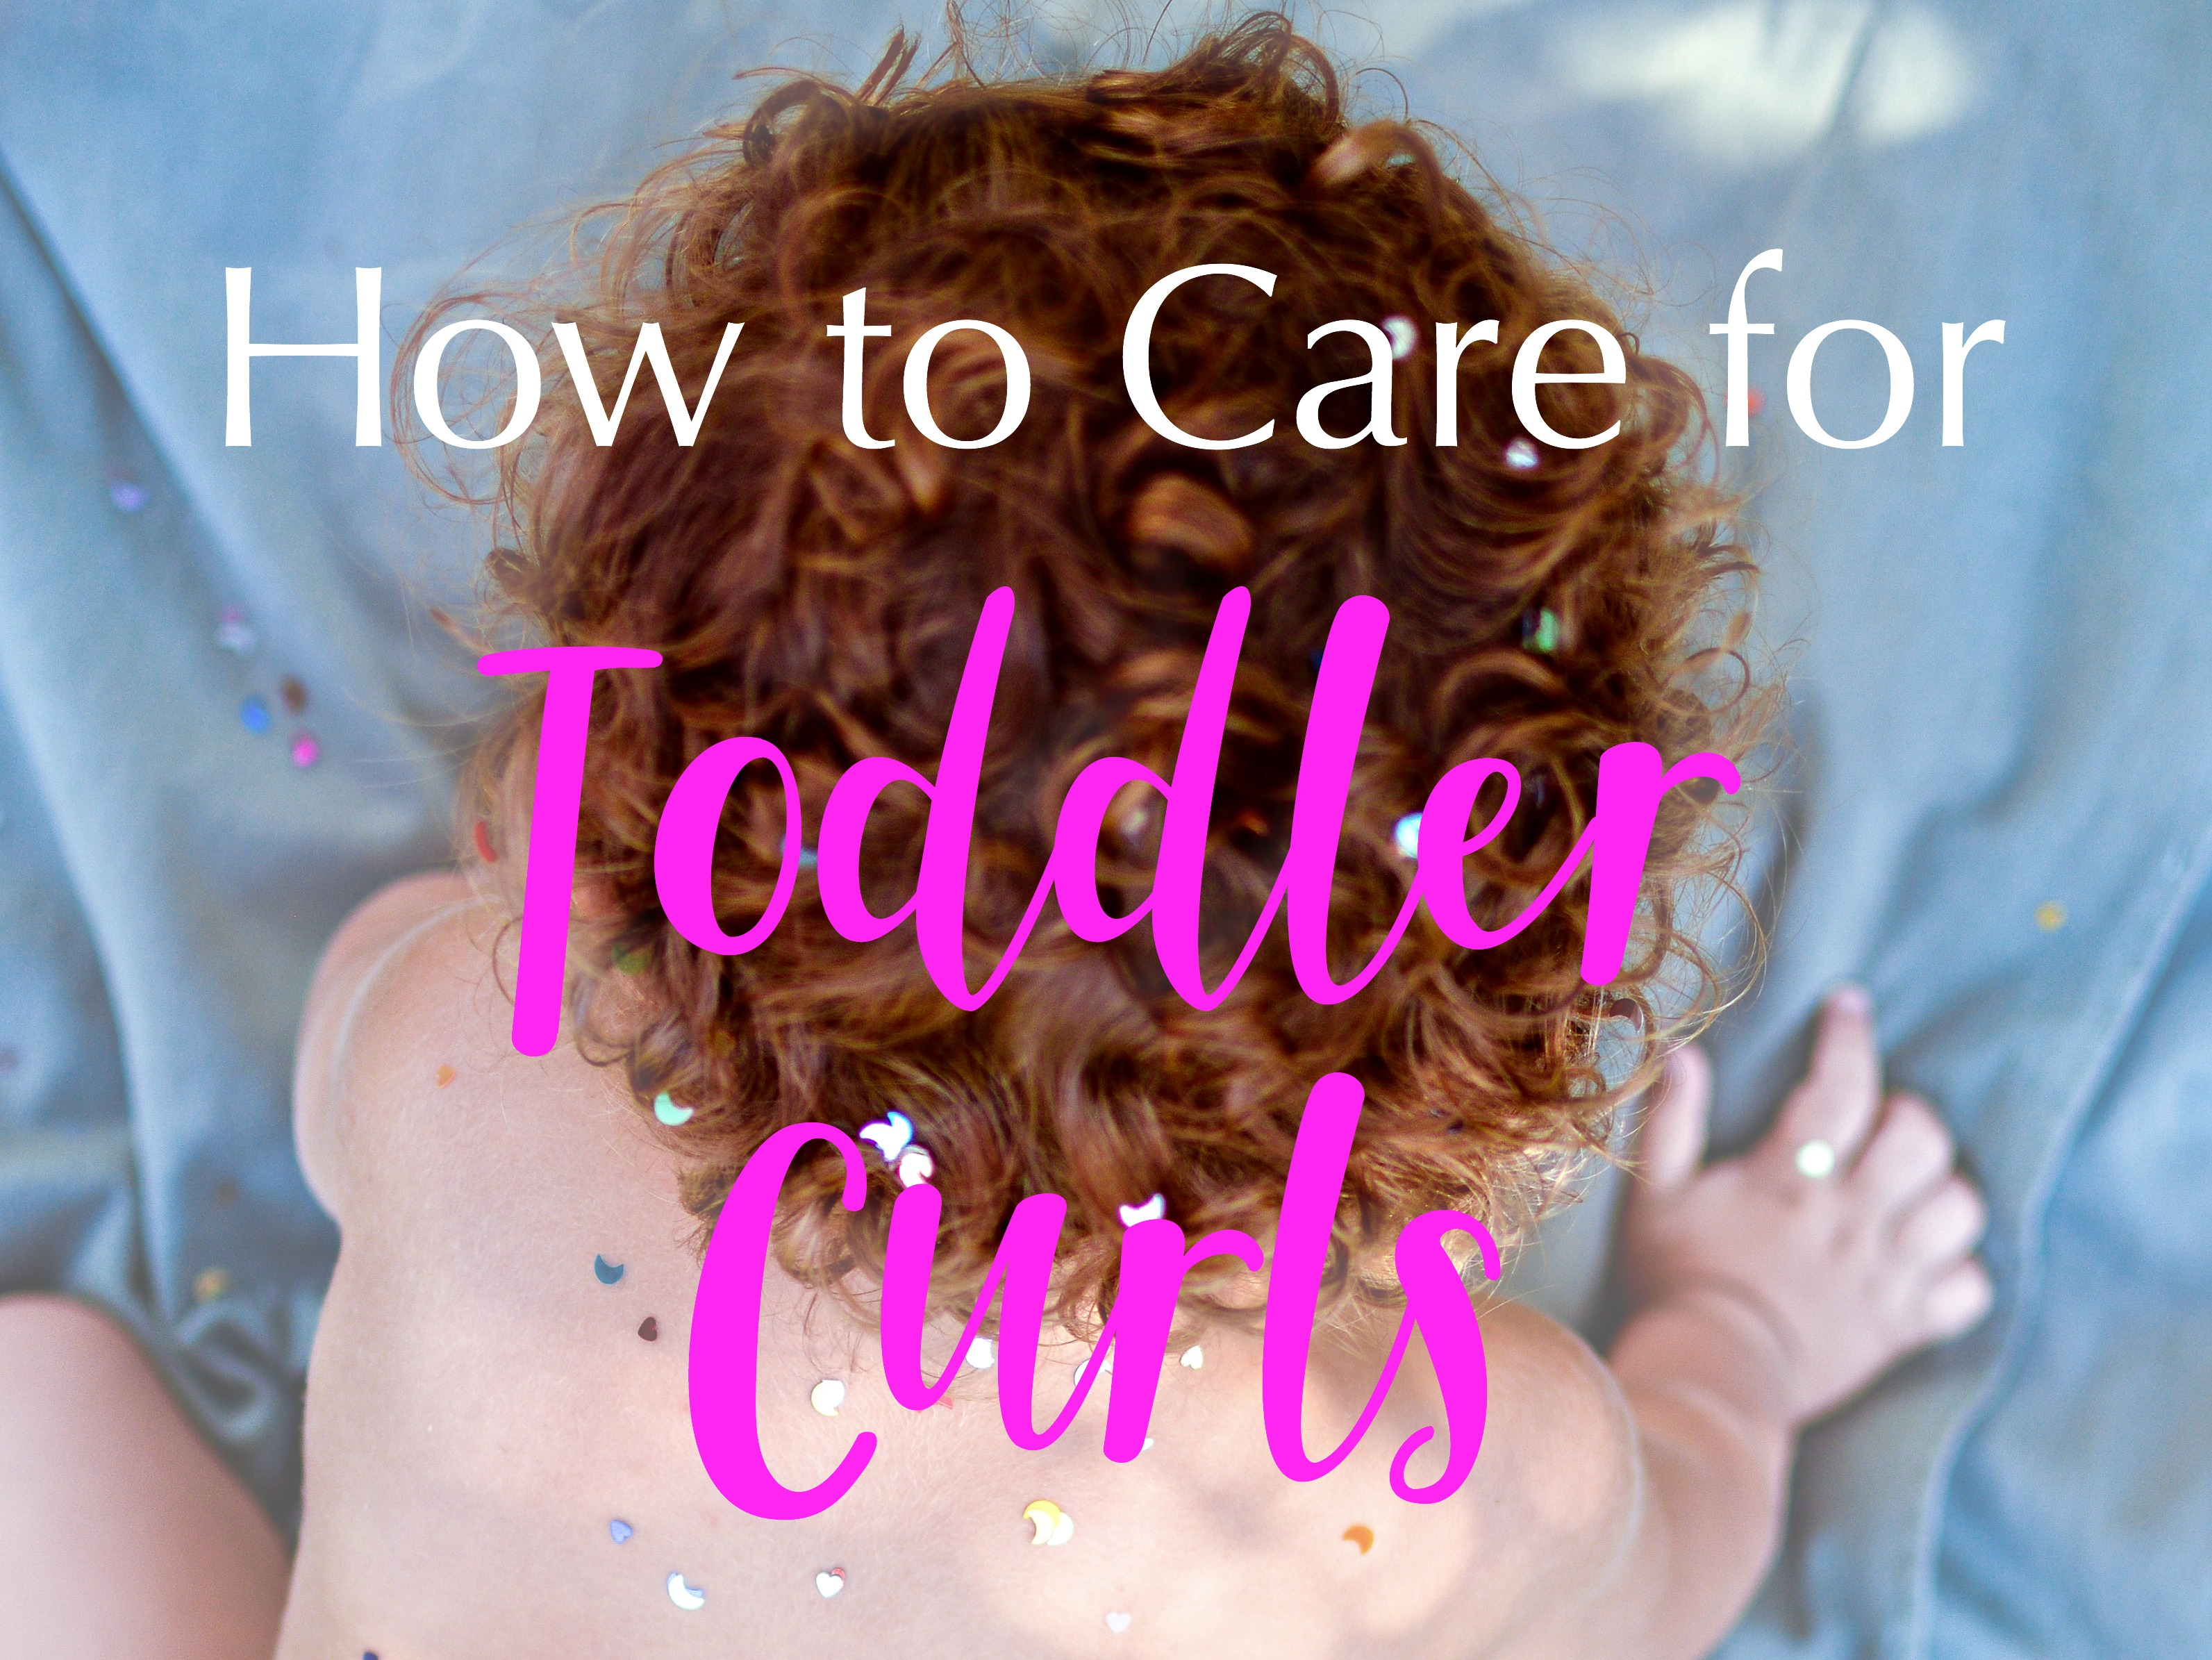 How to care for toddler curls, curly, hair, toddler hair, baby hair, frizzy hair